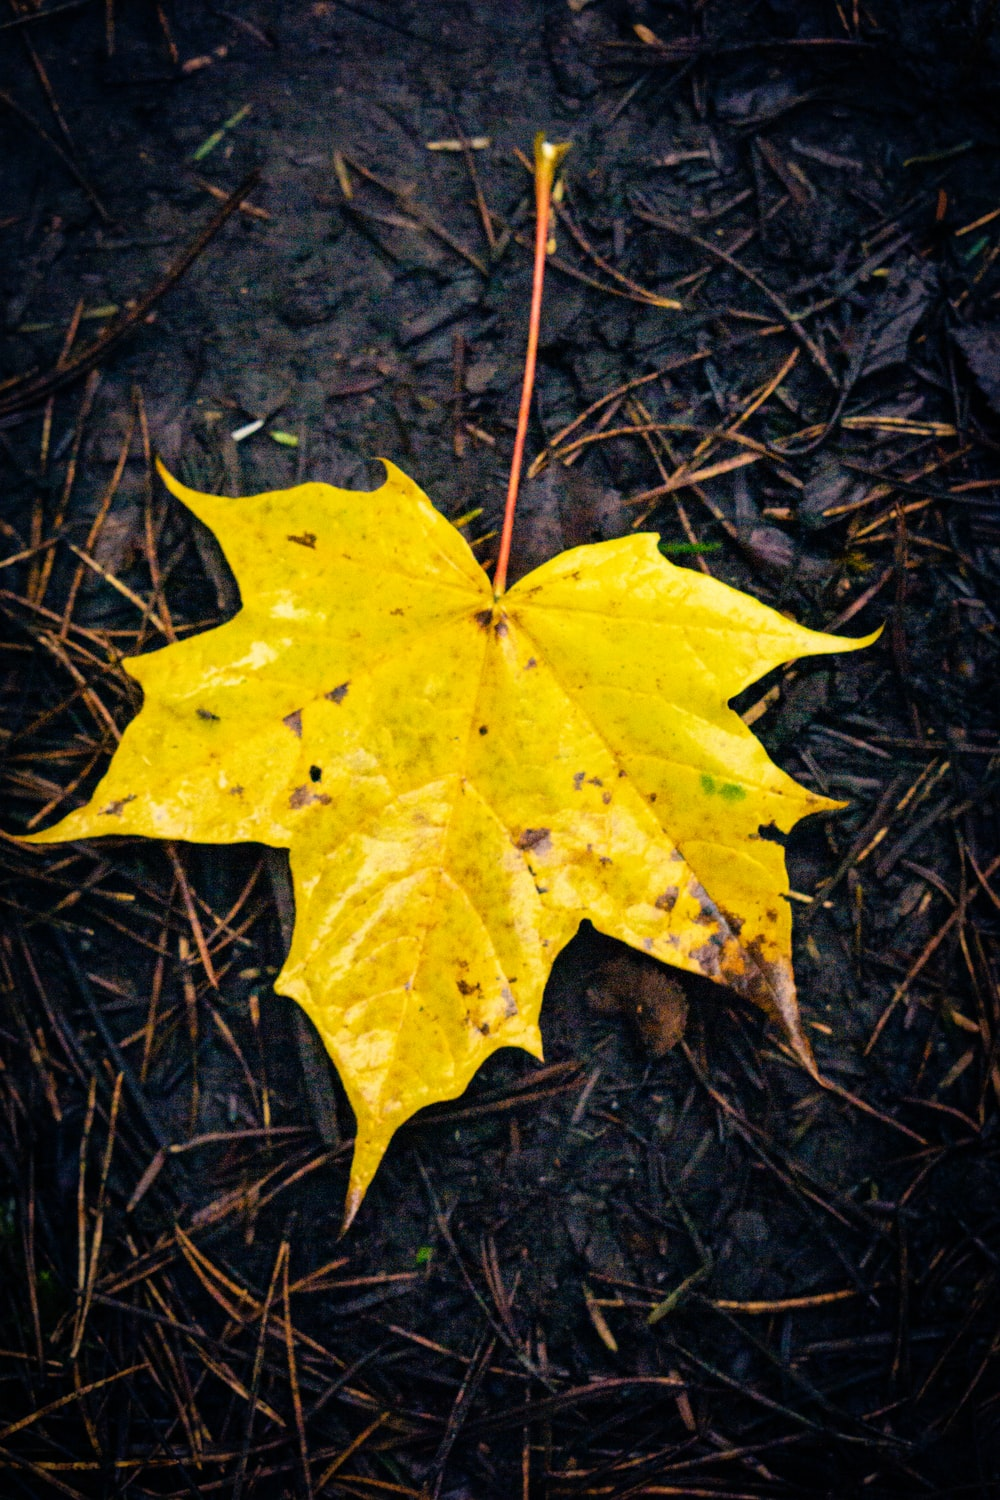 yellow maple leaf on brown dried leaves